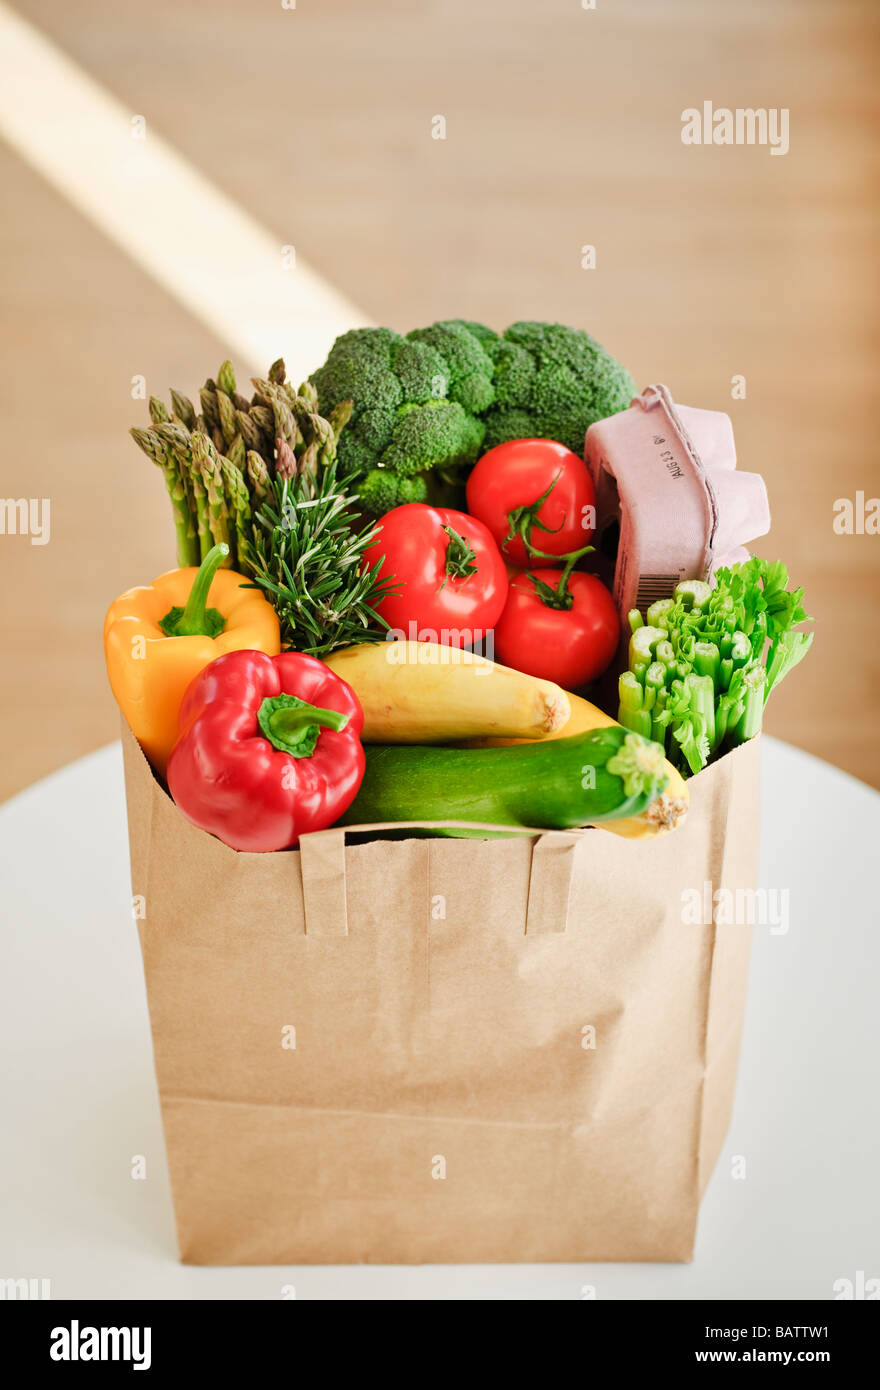 Paper bag filled with vegetables - Stock Image